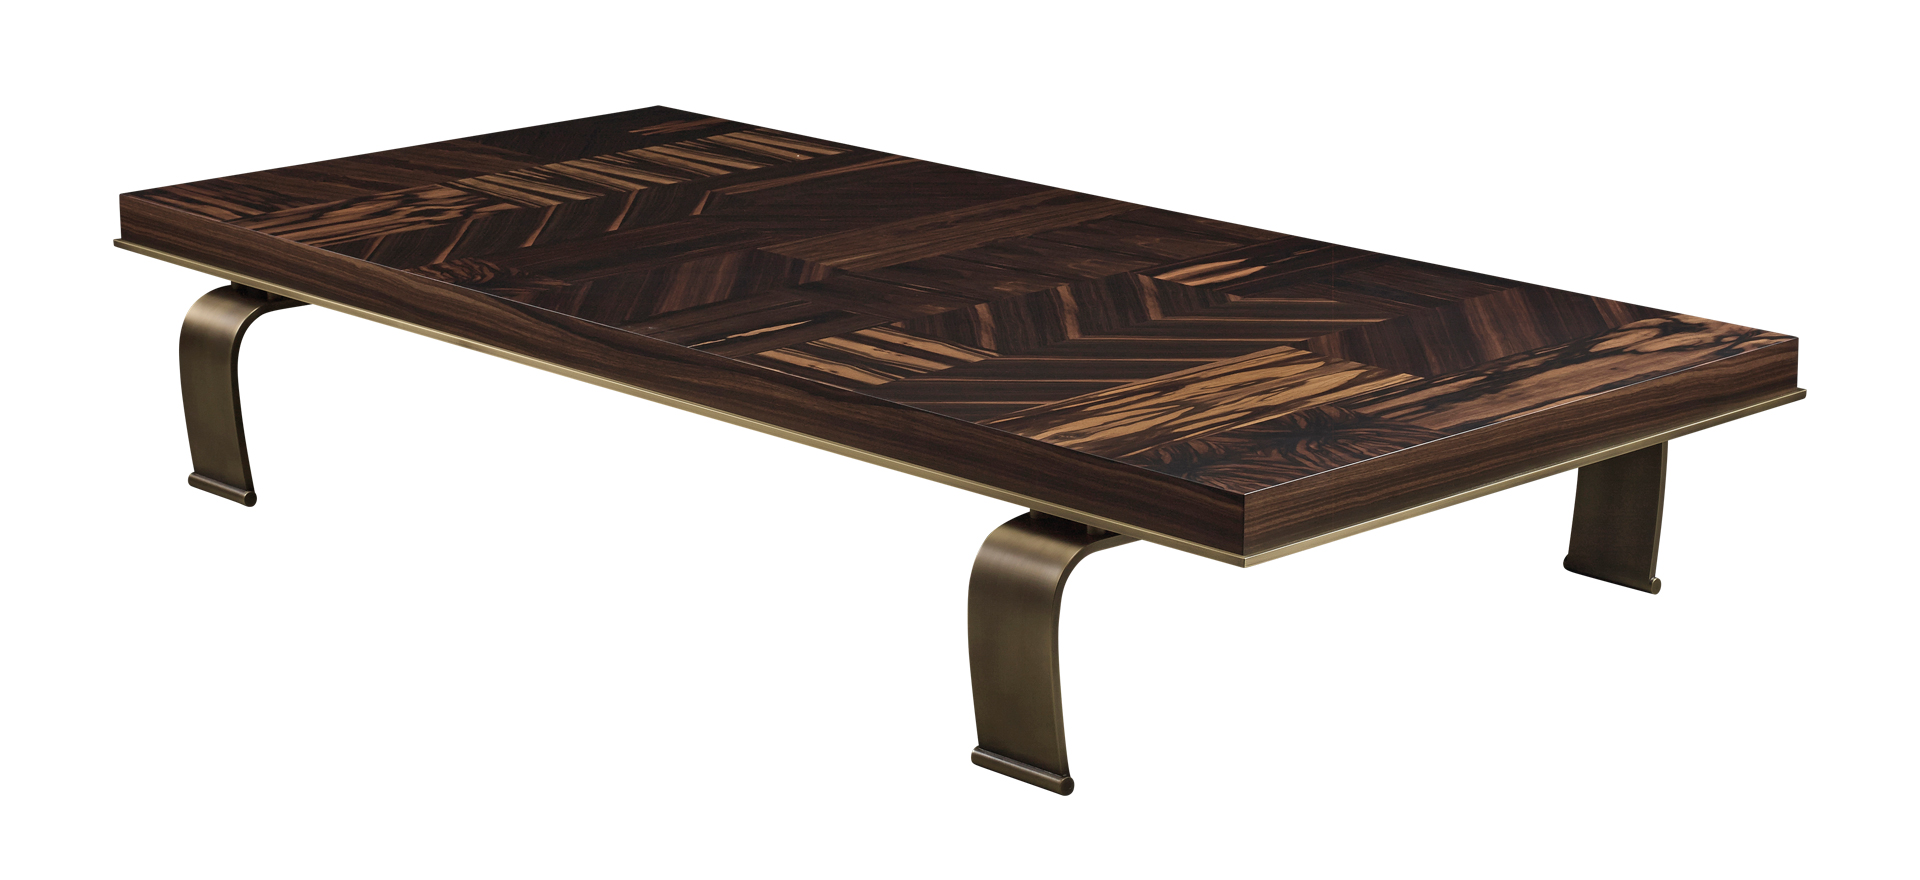 Sumo is an oval or rectangular coffee table with wooden top and bronze legs, from Promemoria's Sun Tales collection | Promemoria